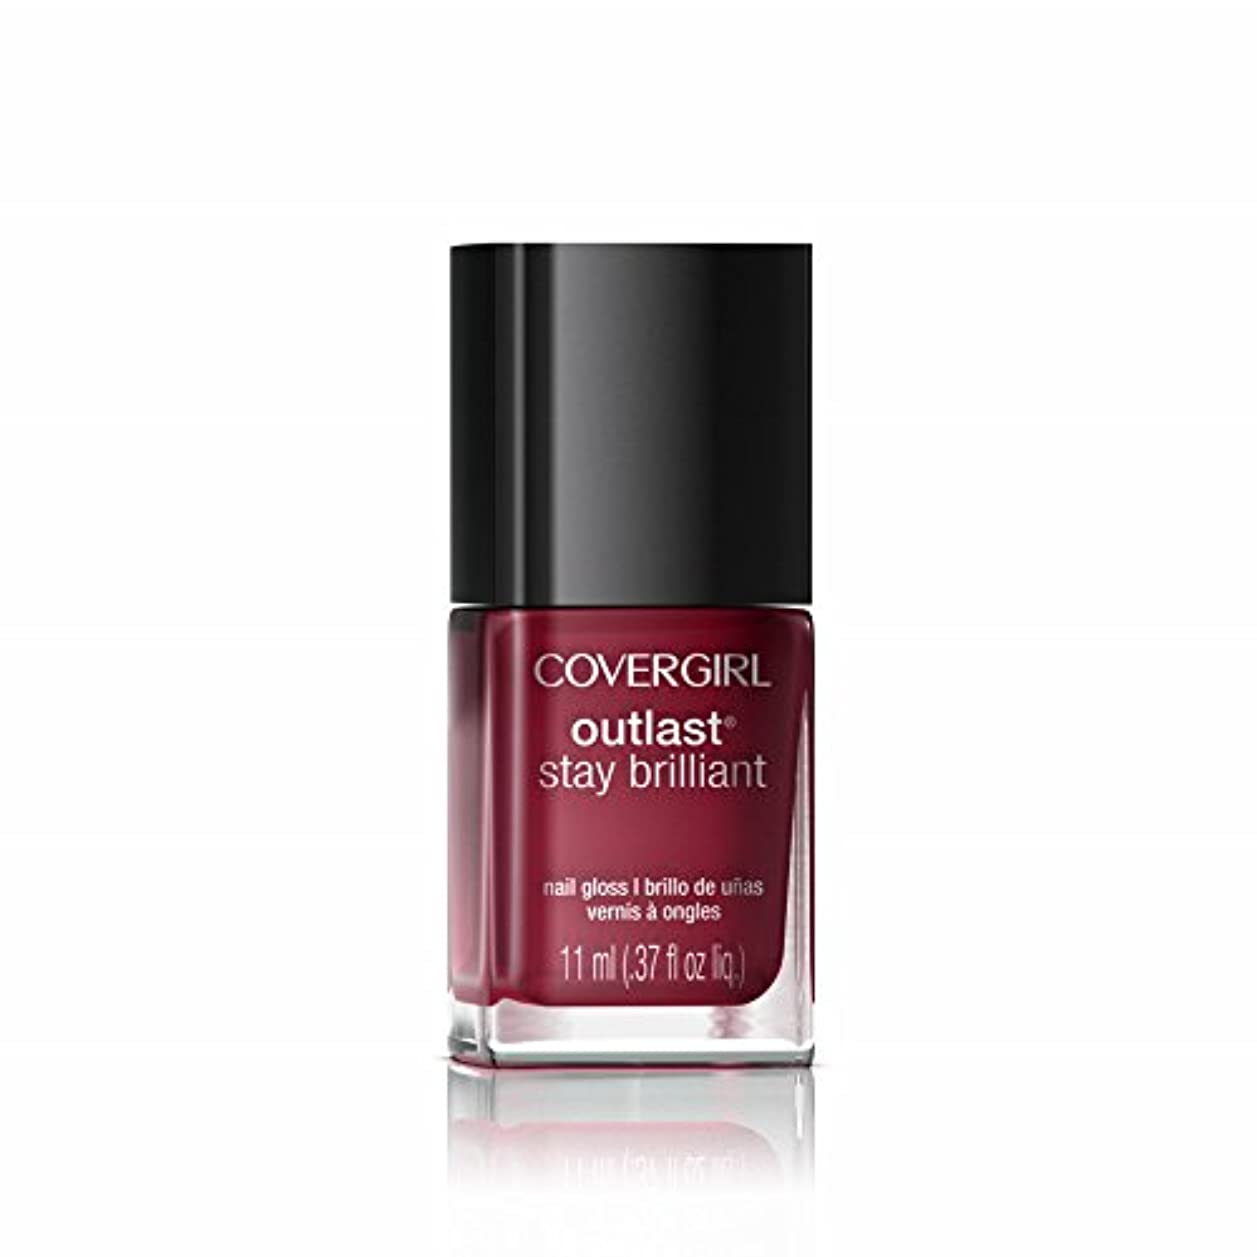 COVERGIRL OUTLAST STAY BRILLIANT NAIL GLOSS #185 FOREVER FESTIVE